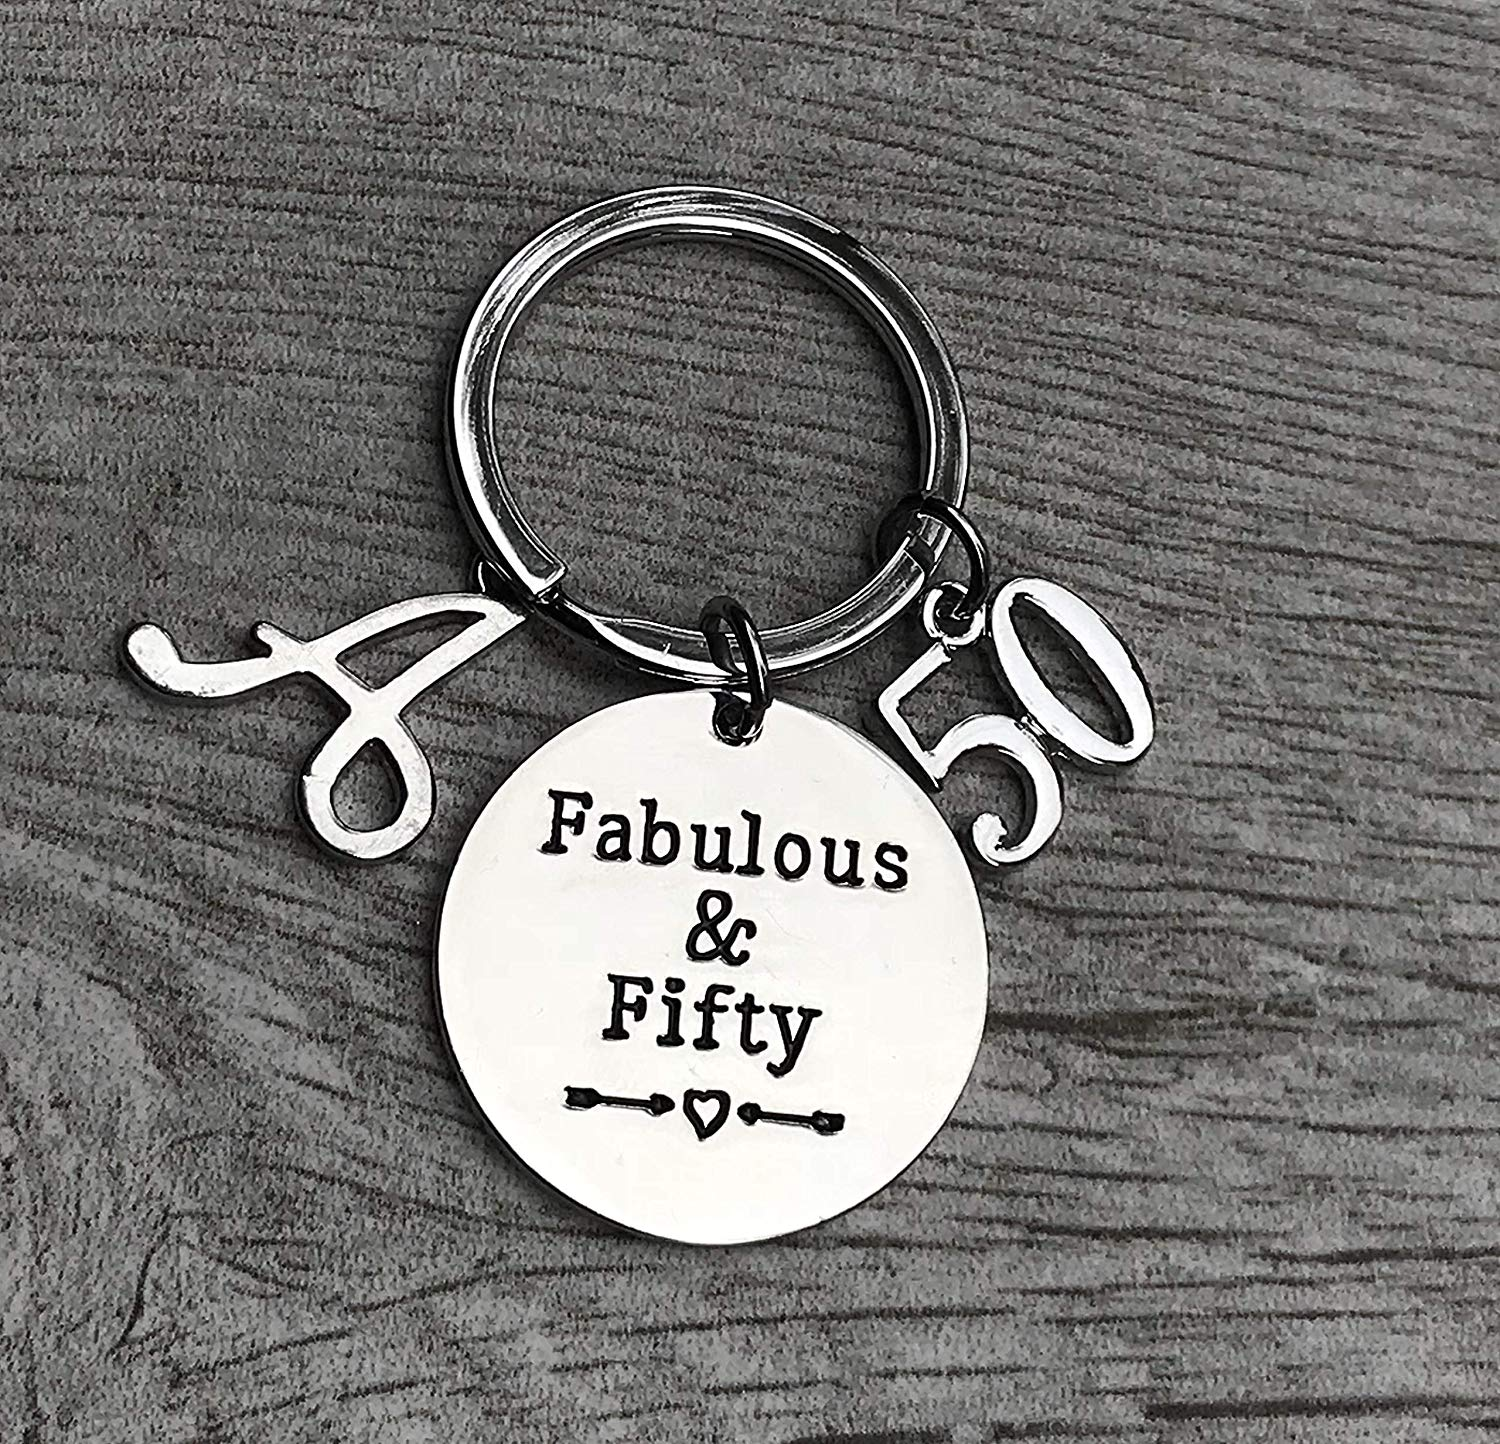 Personalized 50th Birthday Keychain With Letter Charm Gifts For Men Women Fabulous And Fifty Bday Him Or Her